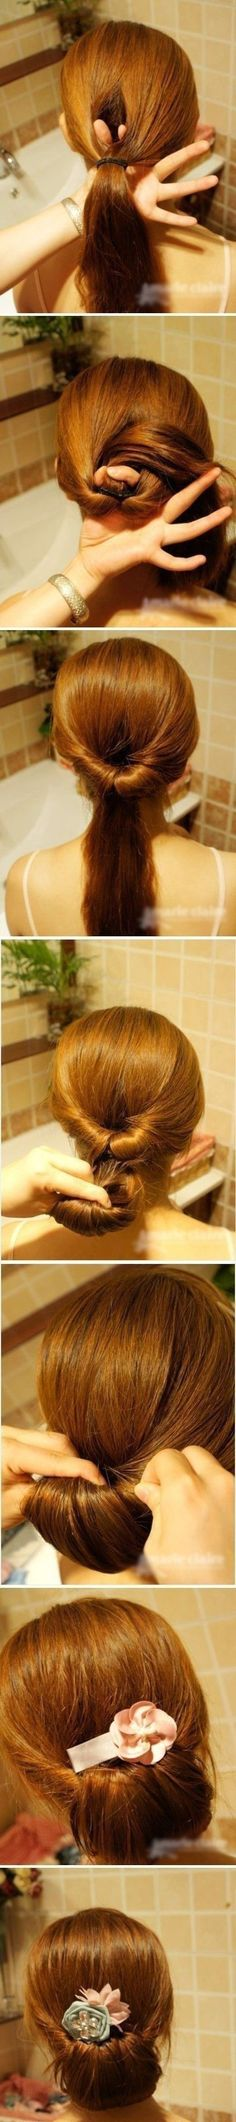 An Updated Chignon - Lazy Hair Day Up Hairstyles, Pretty Hairstyles, Simple Elegant Hairstyles, Easy Wedding Guest Hairstyles, Hairstyle Wedding, Creative Hairstyles, Diy Hair For Wedding Guest, Hair Updos For Weddings Guest, Straight Hairstyles For Long Hair